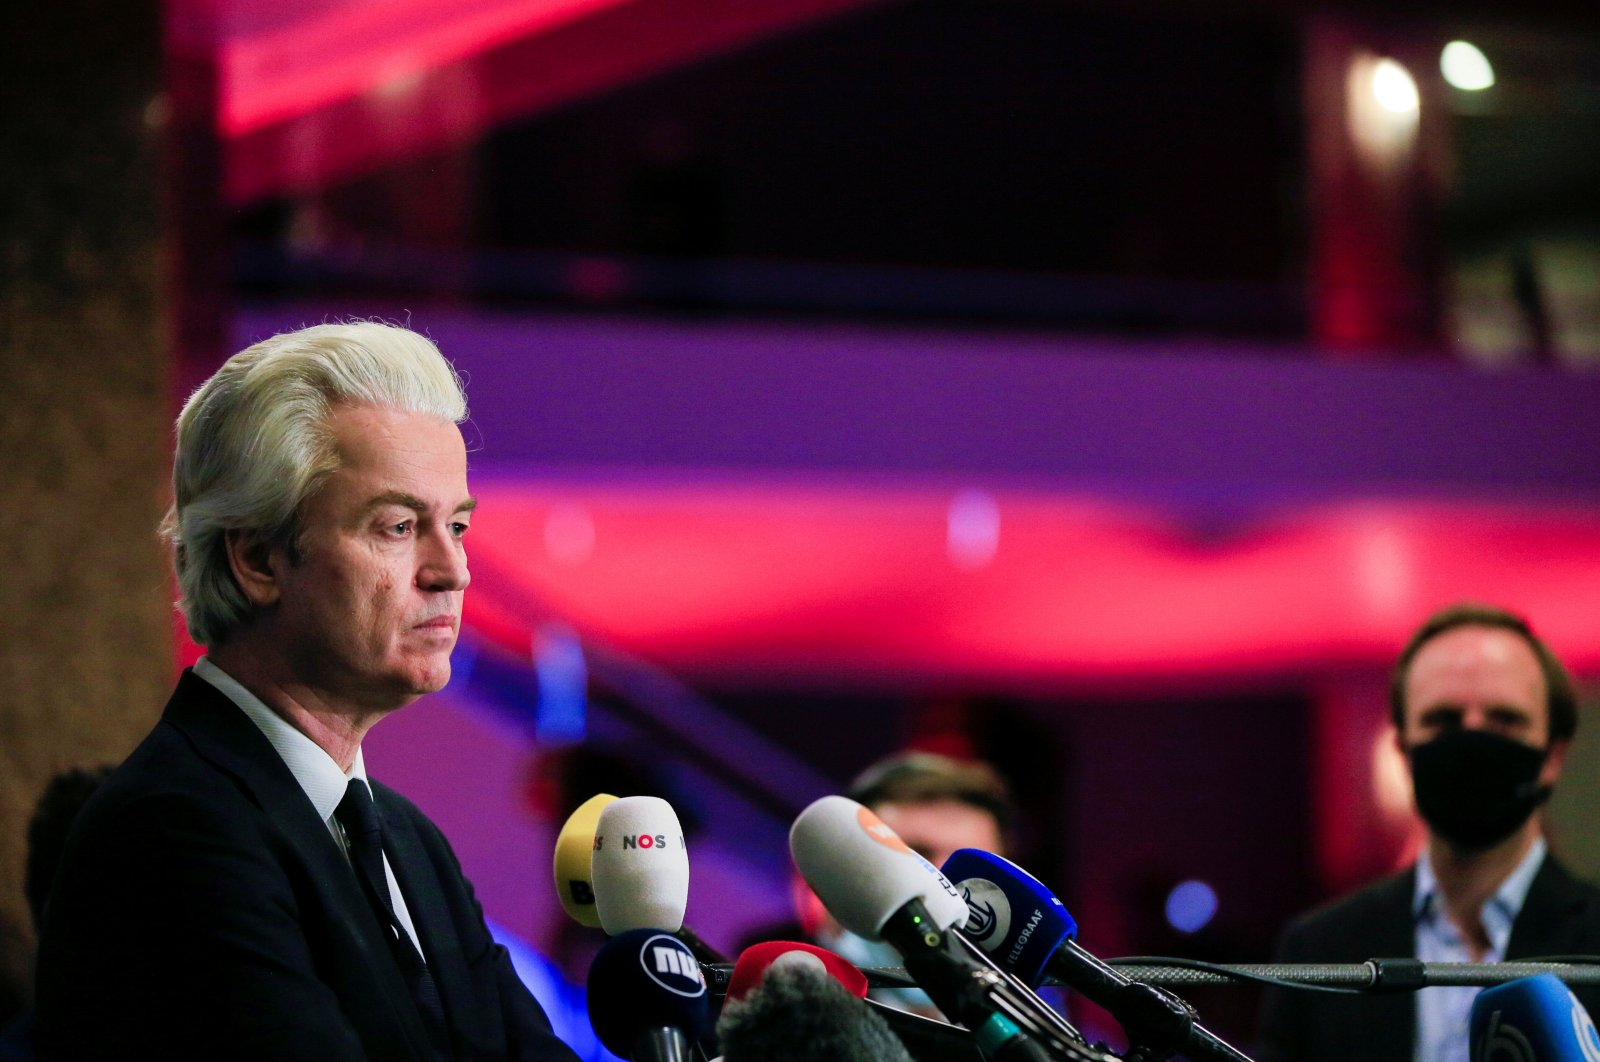 Geert Wilders, leader of the Dutch far-right and largest opposition Freedom Party (PVV), listens to questions from journalists as he reacts to the exit polls in the Netherlands' general election in The Hague, Netherlands, March 17, 2021. (Reuters Photo)